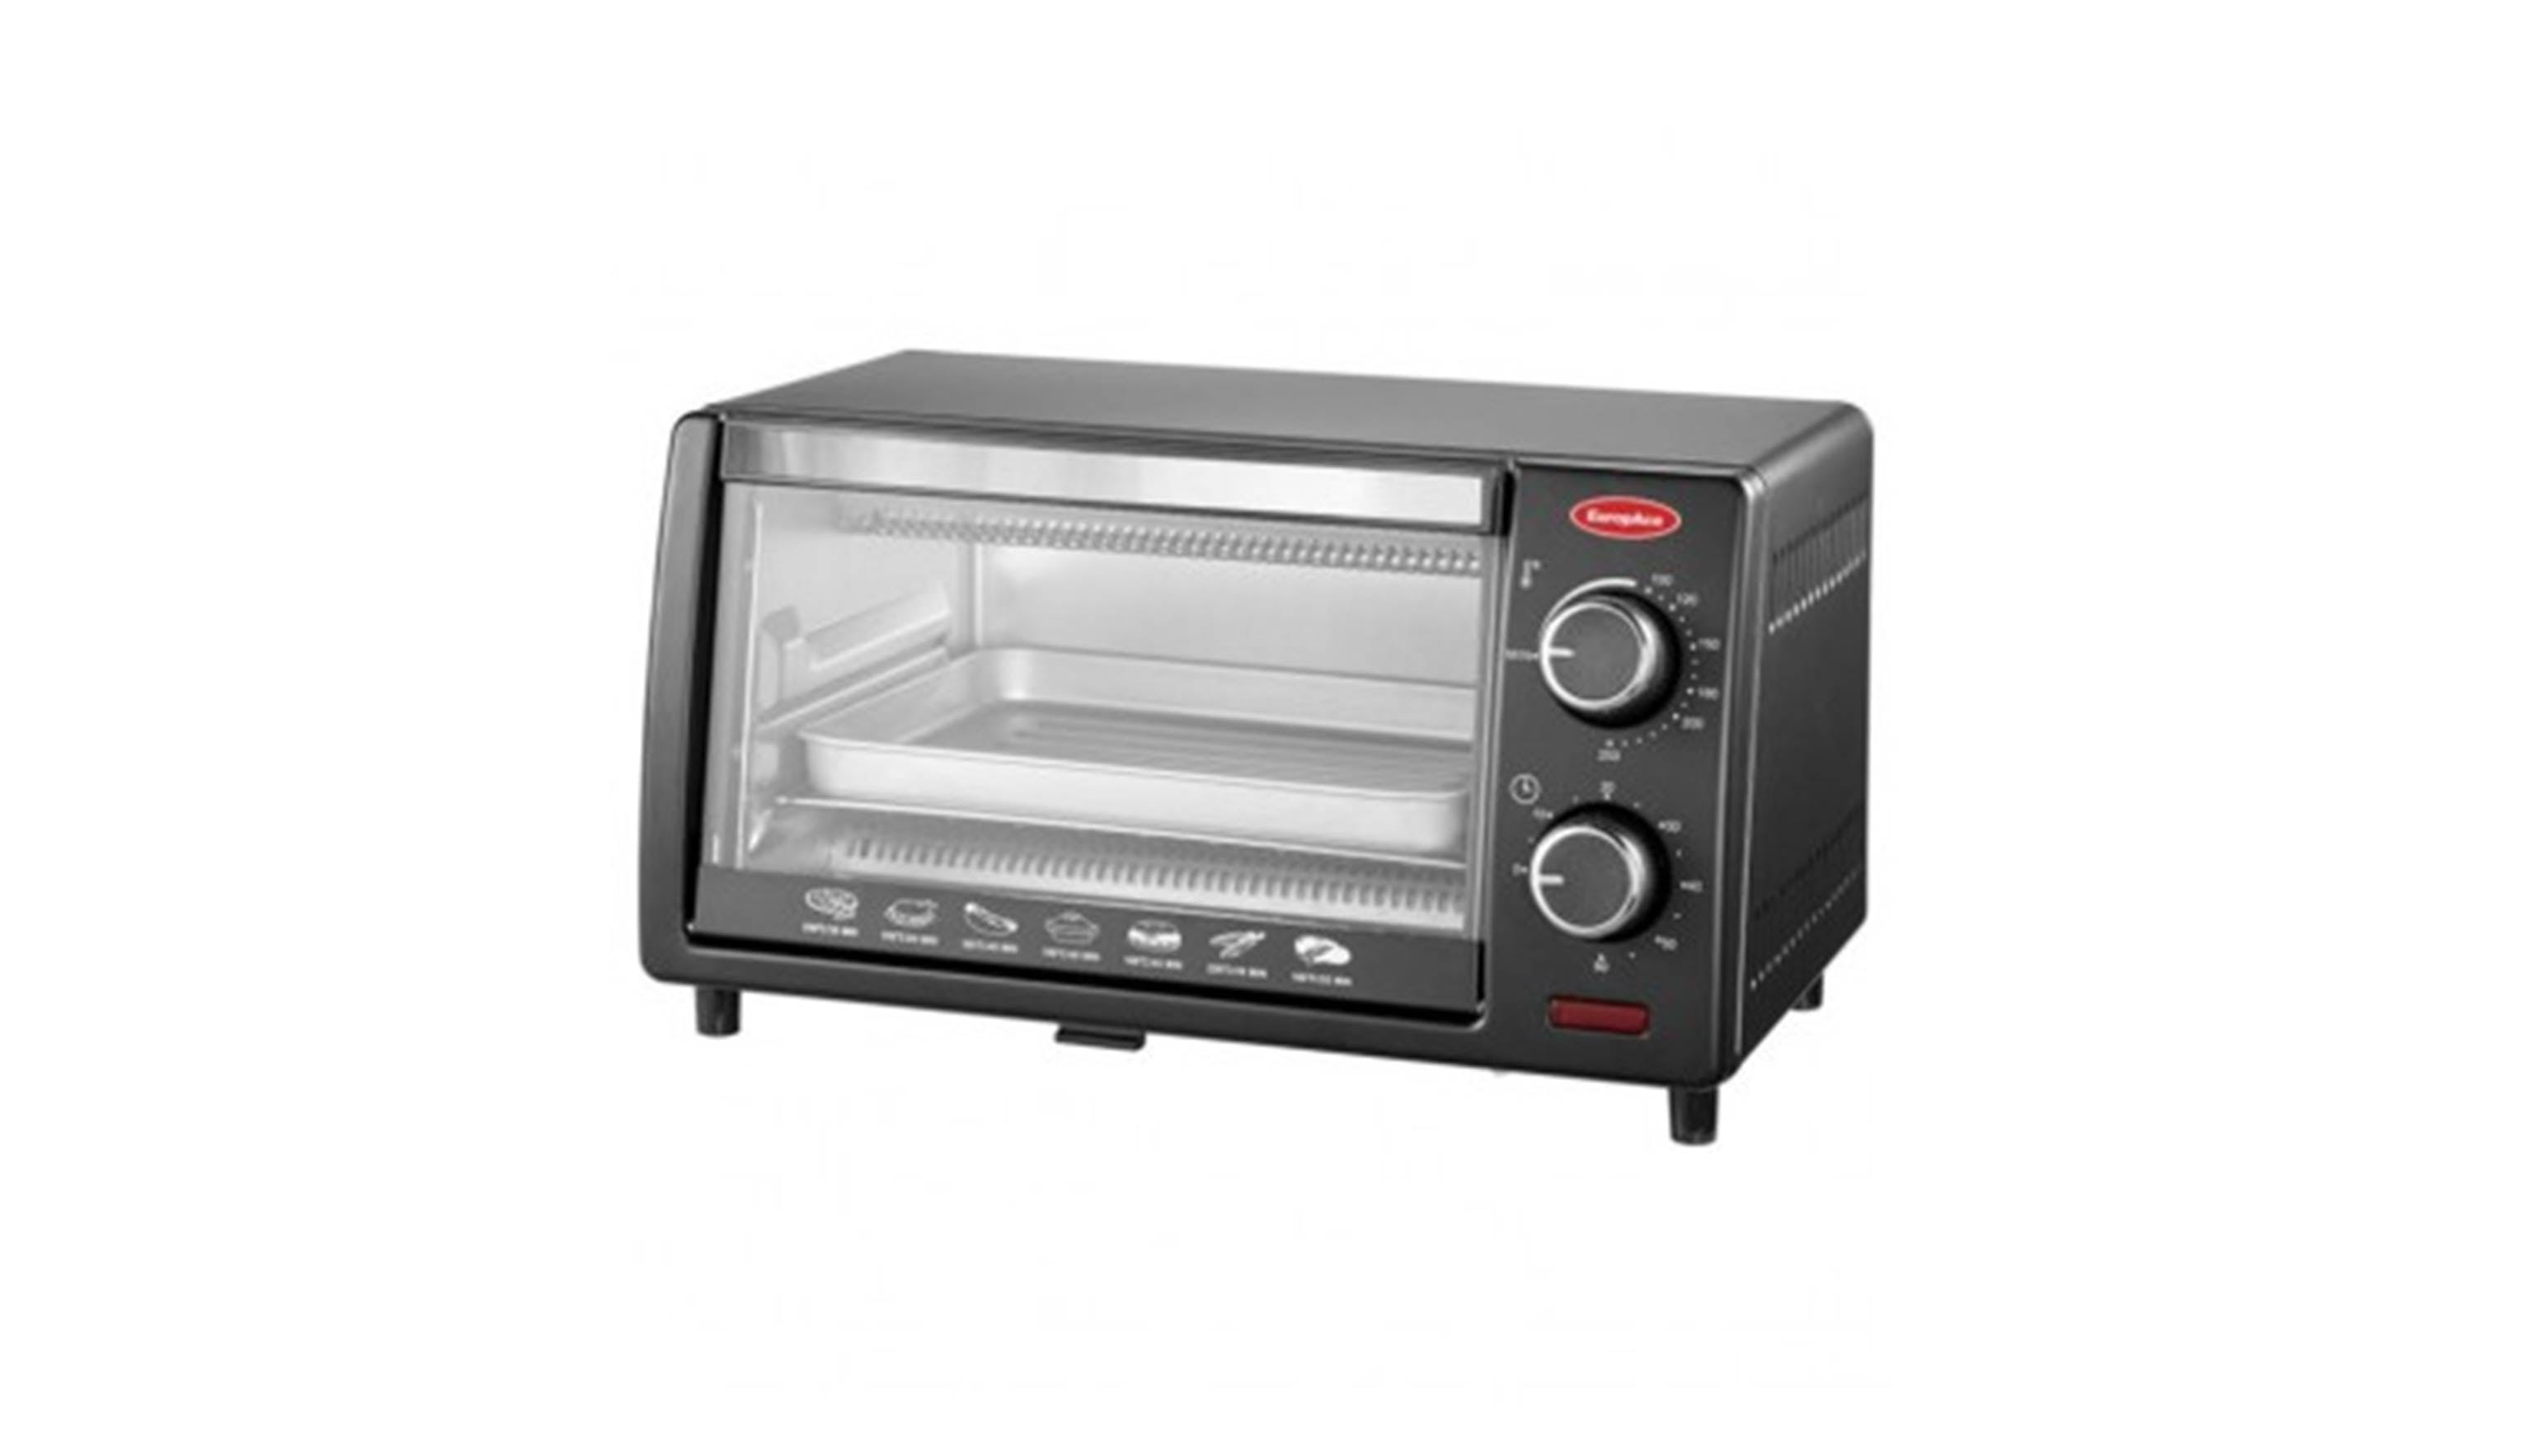 samsung repairs company microwave with full roadmate ltd toaster size service truck oven volt